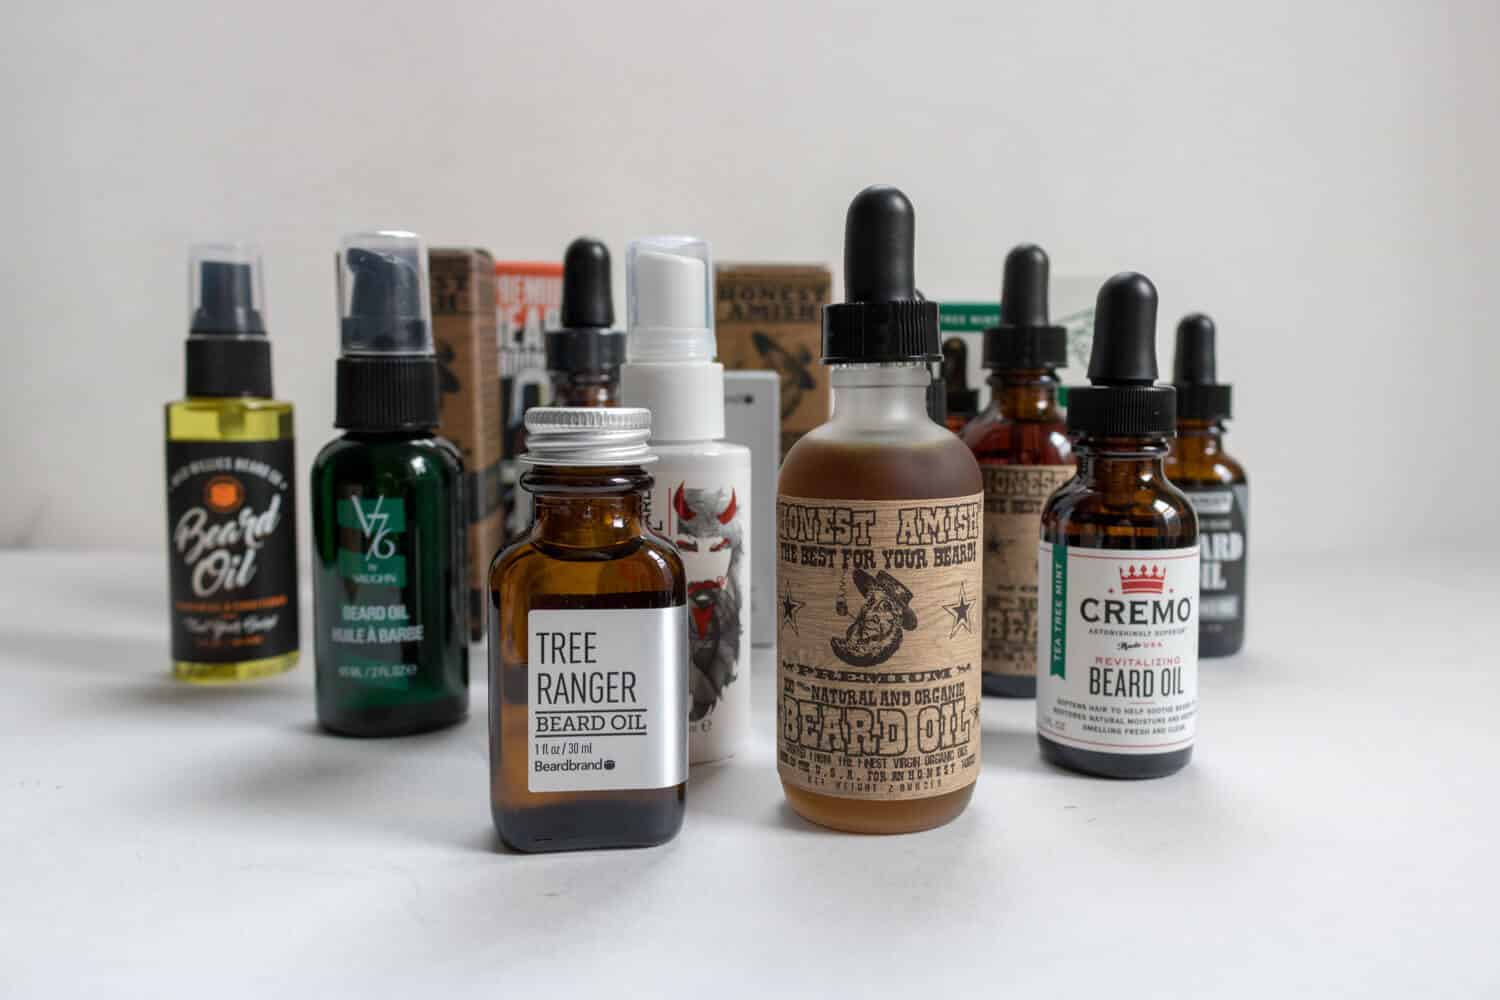 17 Best Beard Oil: Top Brands Reviewed [2021]